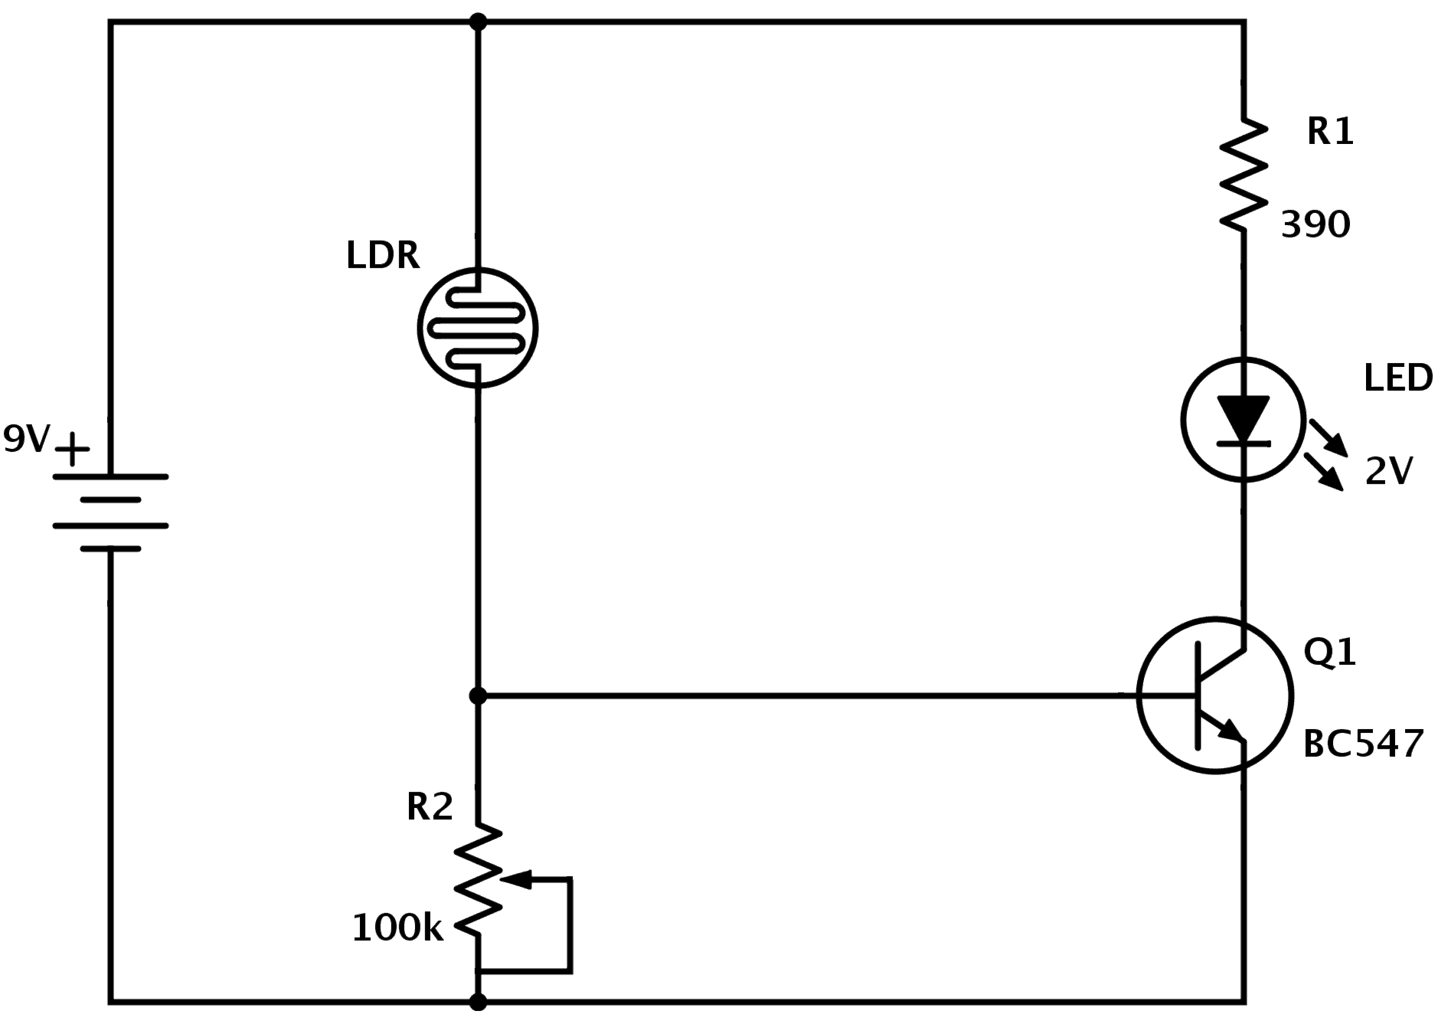 Circuit Diagram How To Read And Understand Any Schematic Wiring For St Ldr